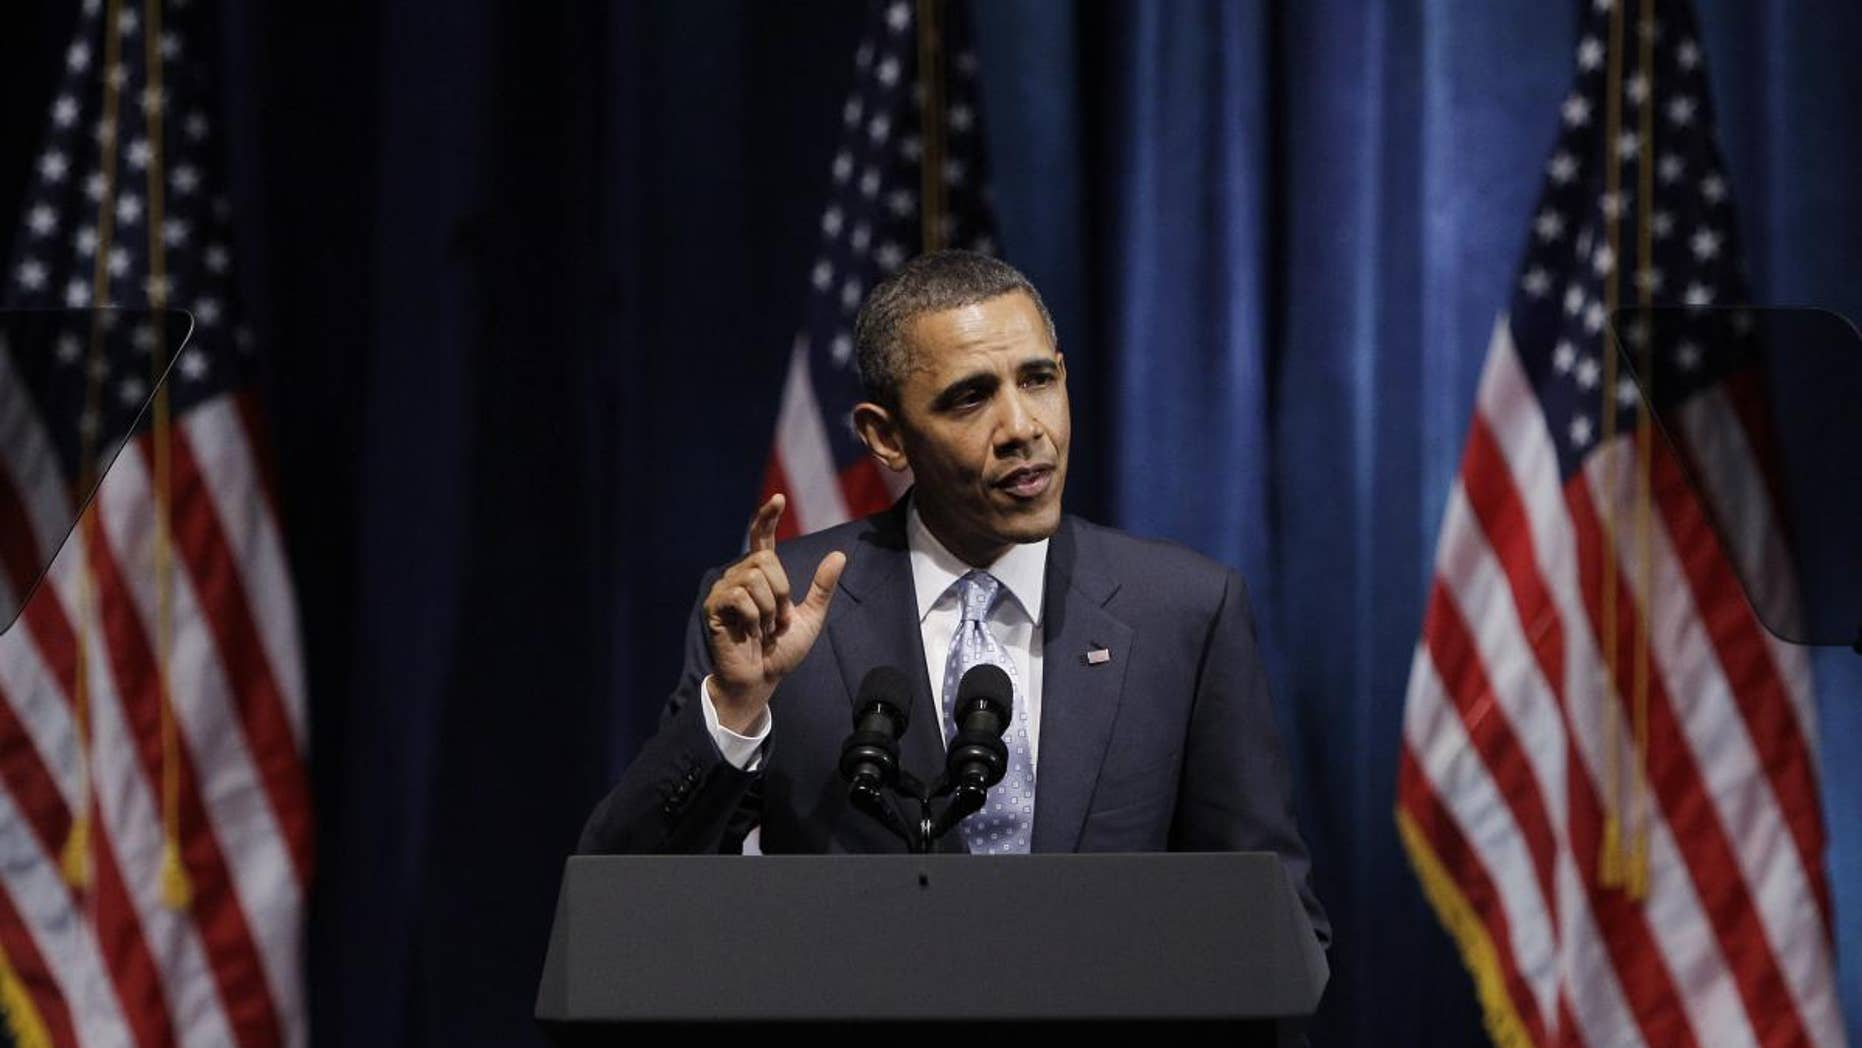 AP image/President Obama at a DNC fundraiser in Texas